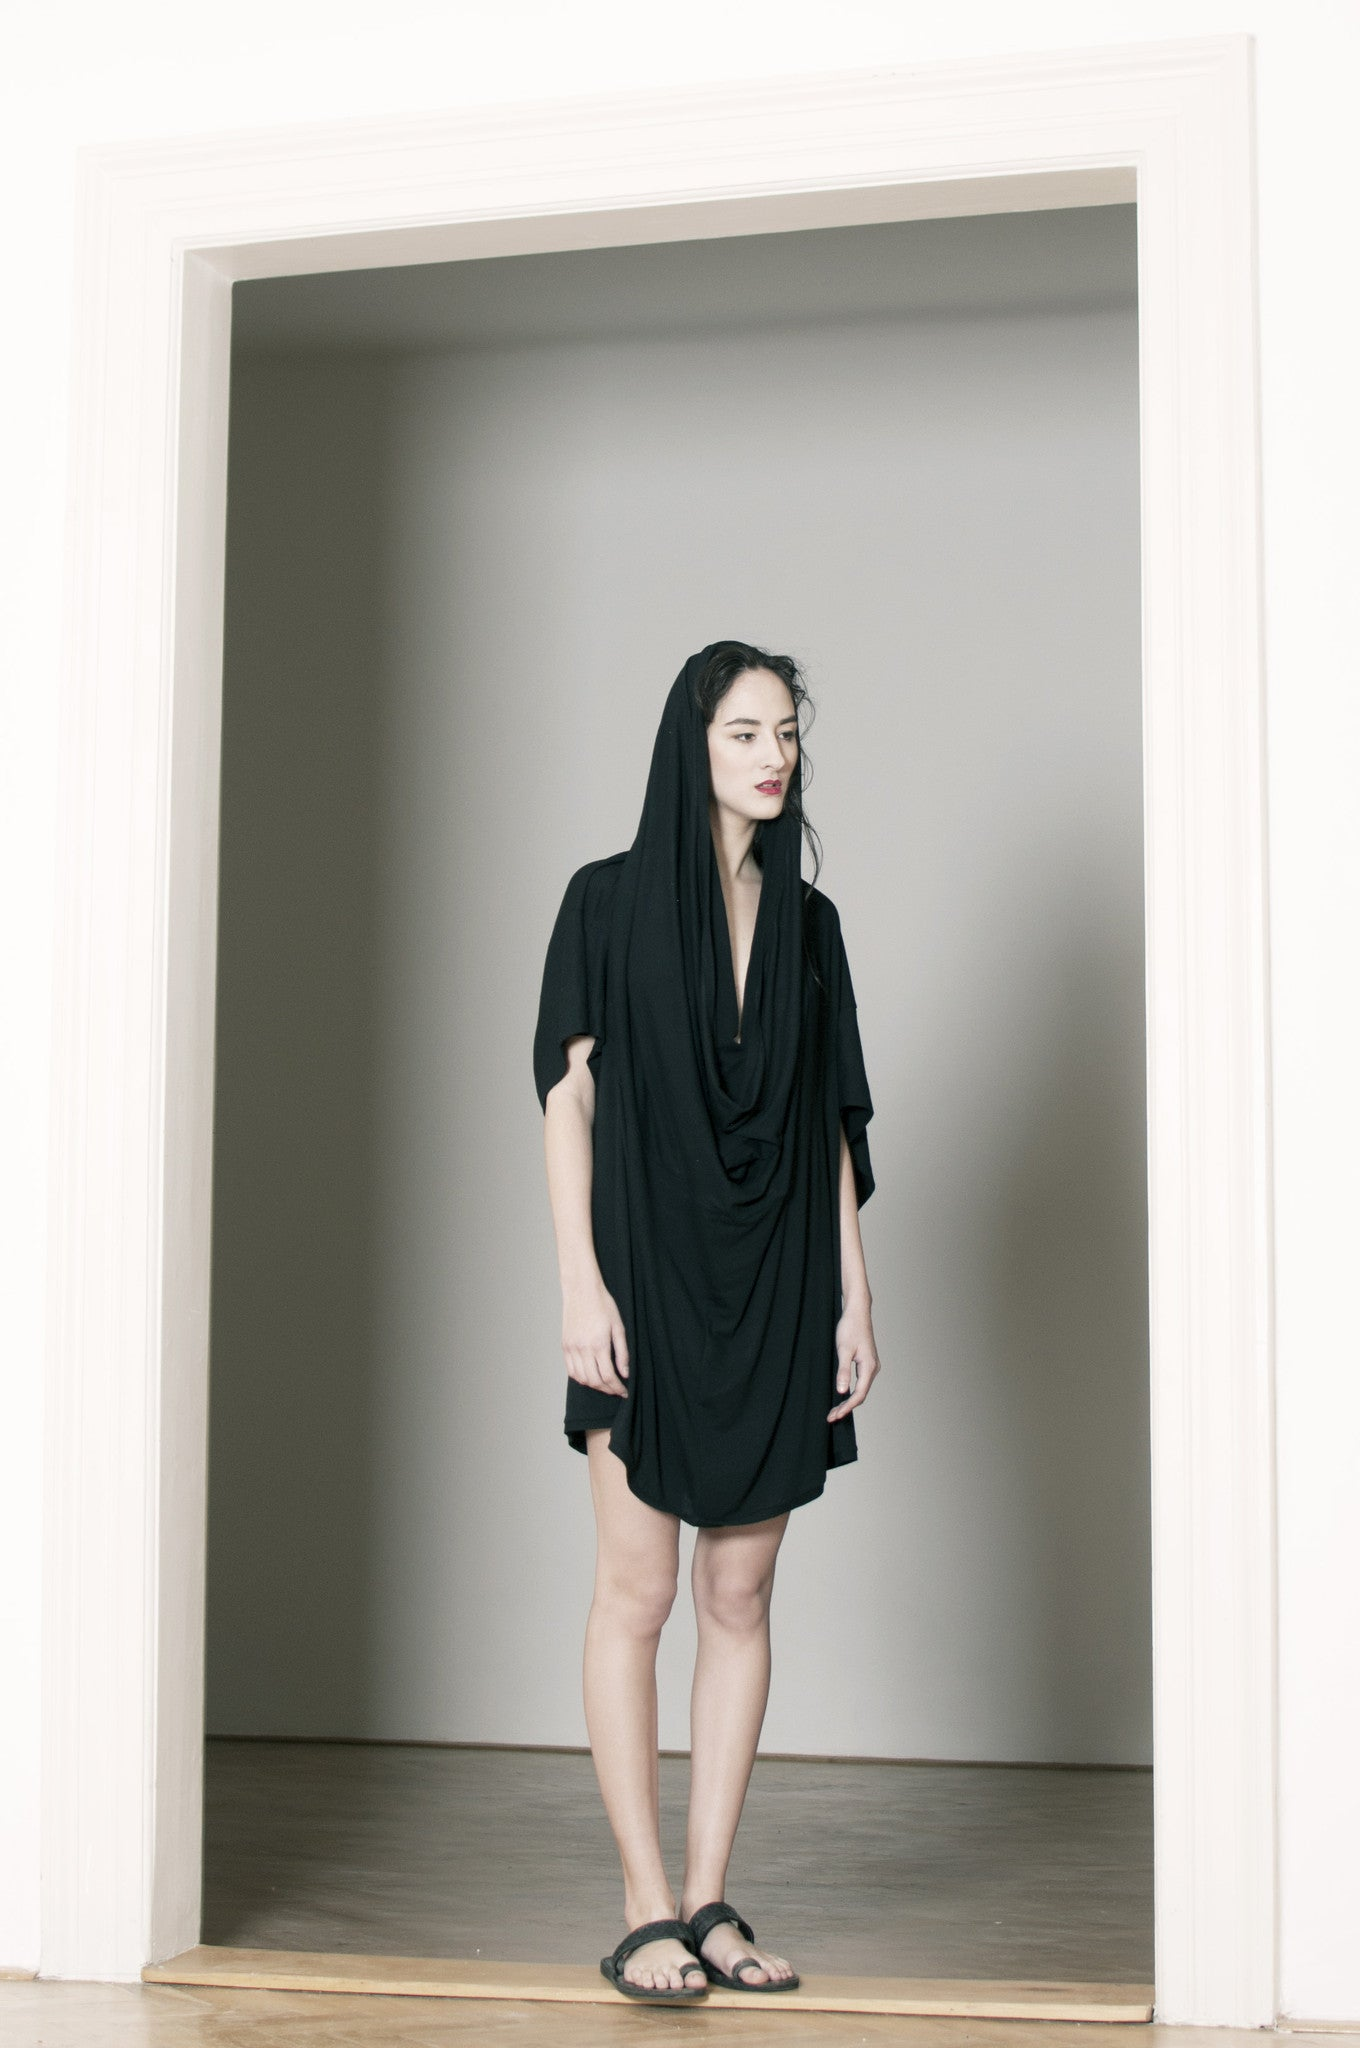 VARIABLE BLACK TSHIRT / ver. WOMAN